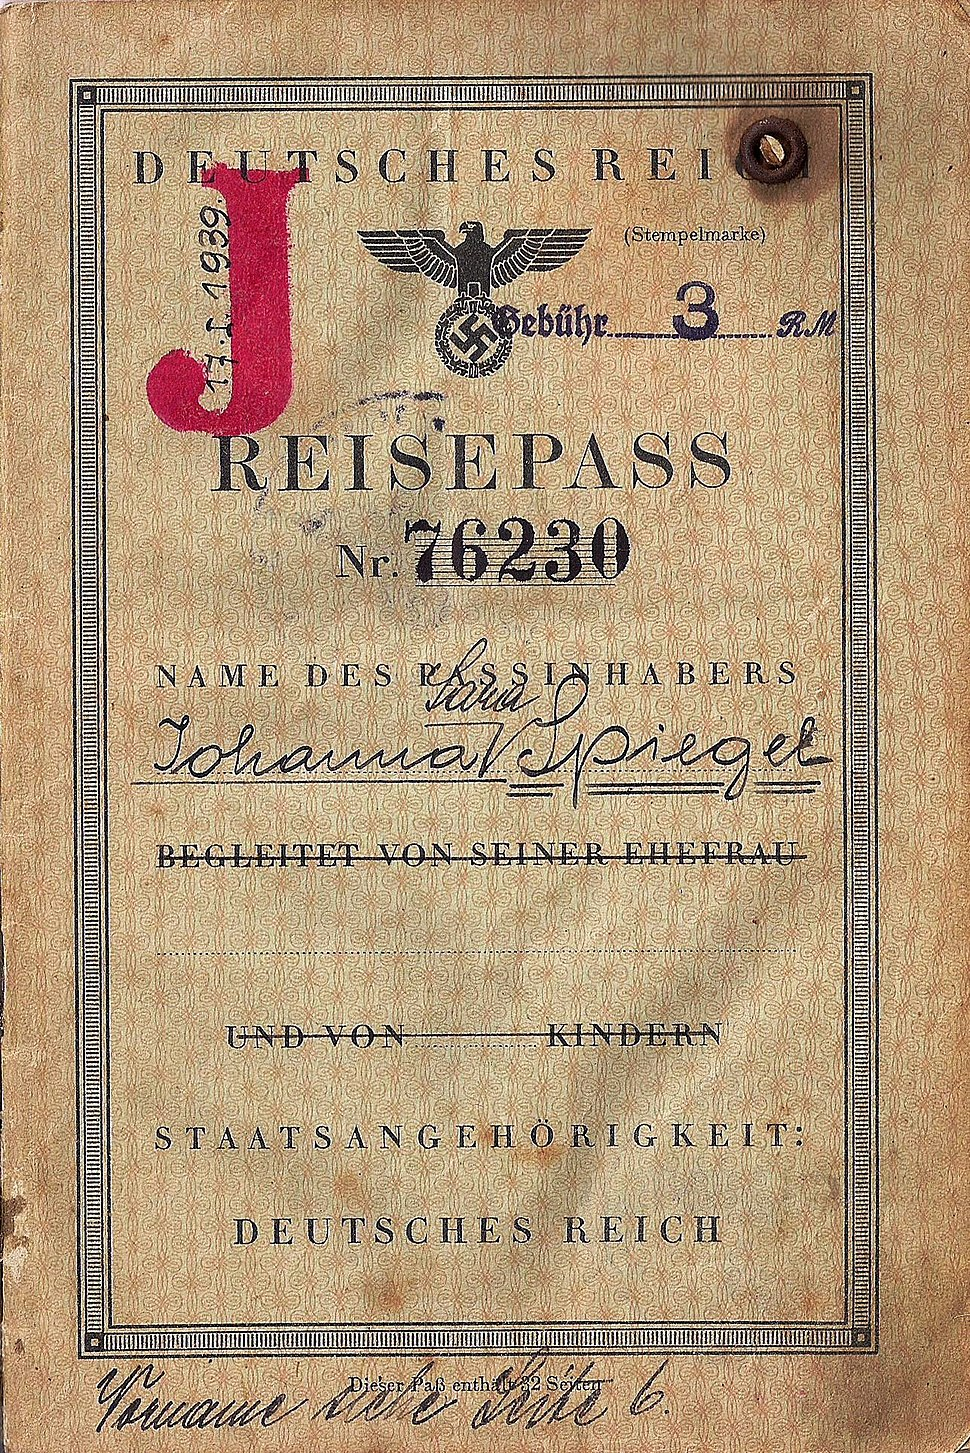 German J stamped passport used to escape Europe in 1940